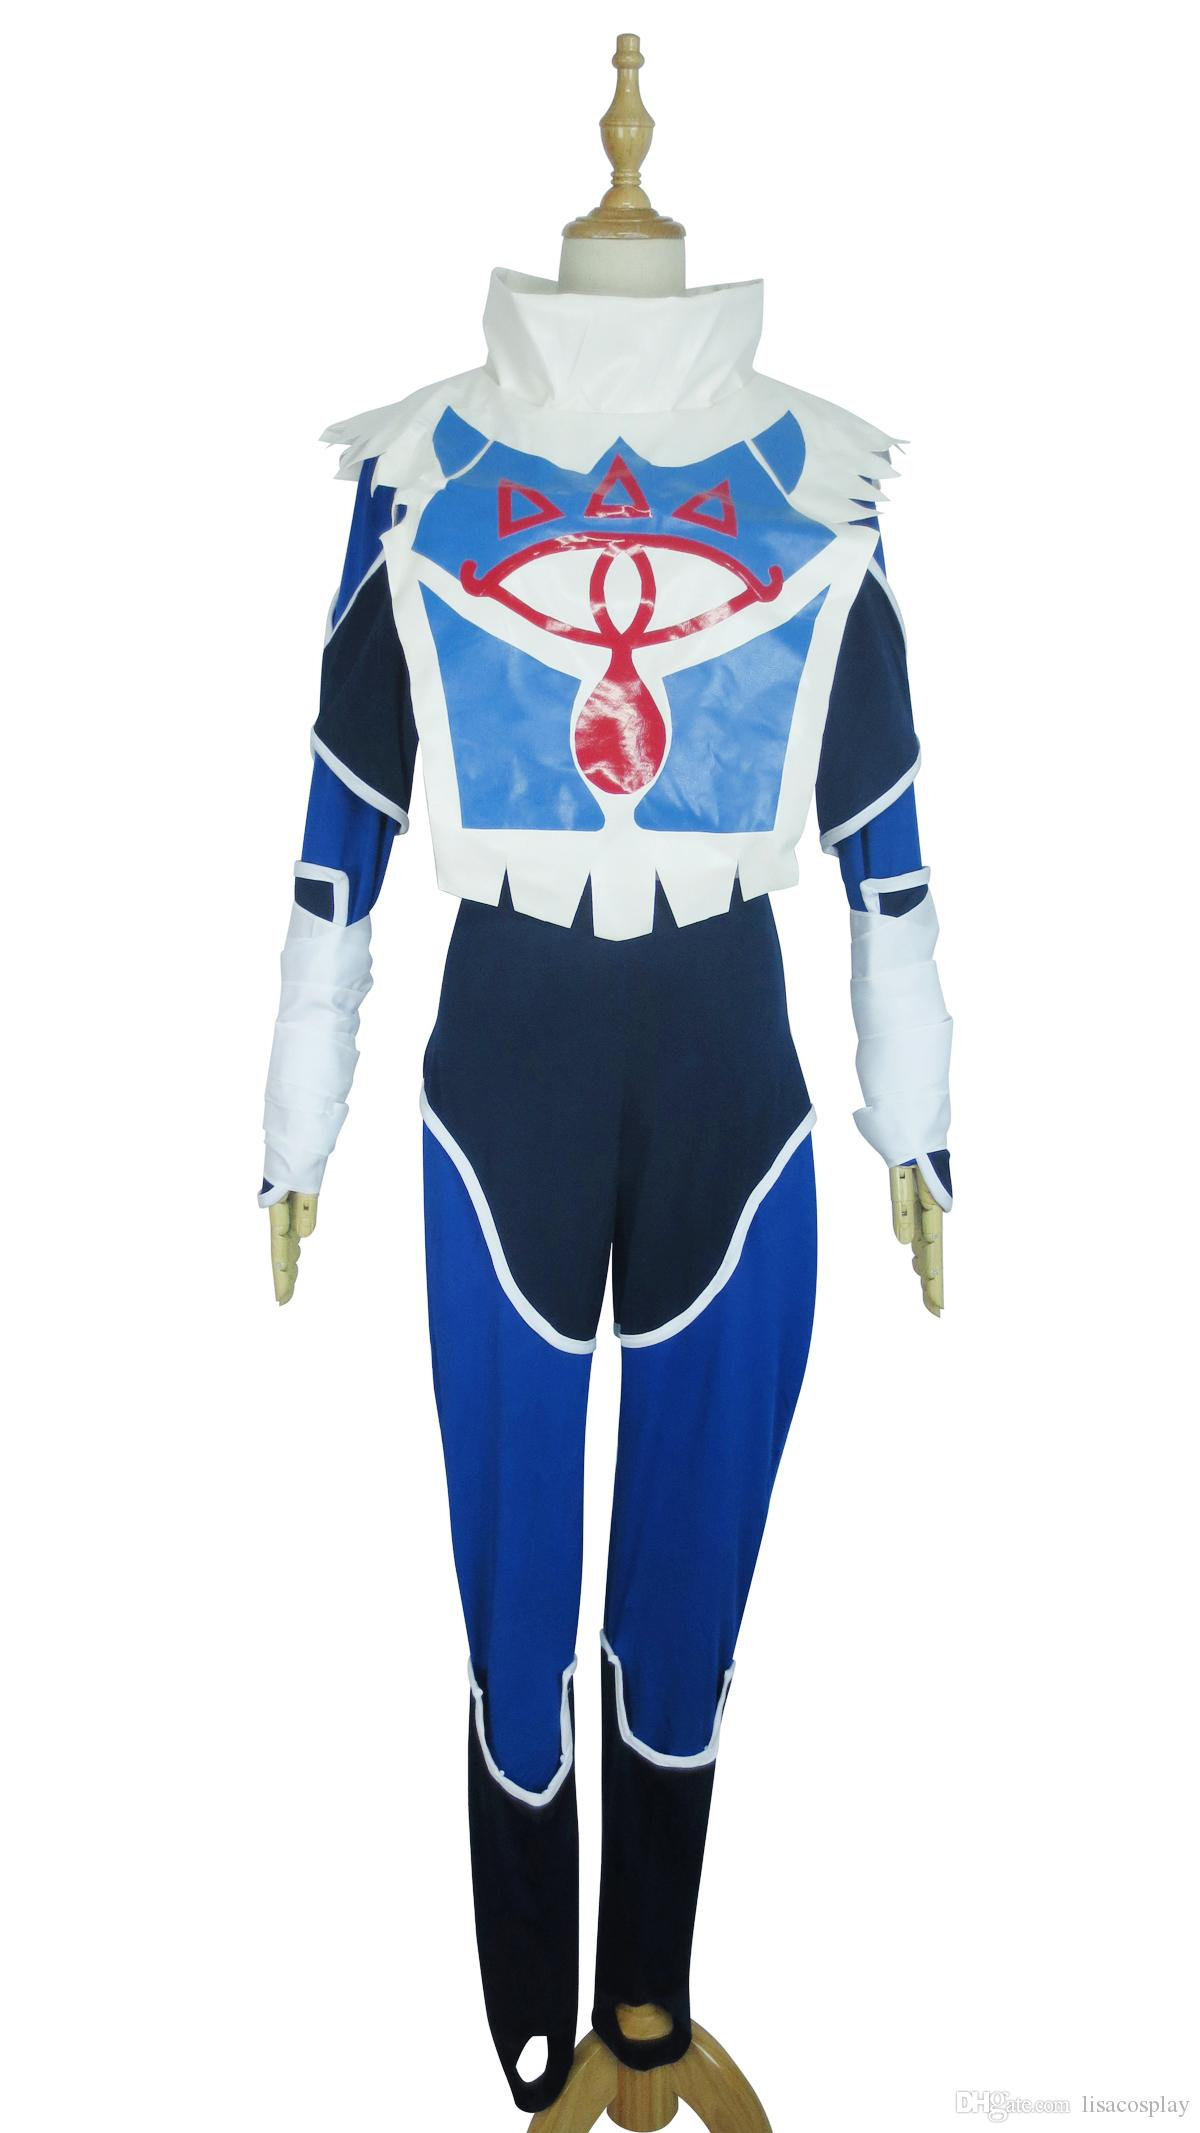 The Legend Of Zelda Ocarina Of Time Sheik Blue Uniform Game Cosplay Costume Kids Anime Cosplay Anime For Cosplay From Lisacosplay $103.52| Dhgate.Com  sc 1 st  DHgate.com & The Legend Of Zelda Ocarina Of Time Sheik Blue Uniform Game Cosplay ...